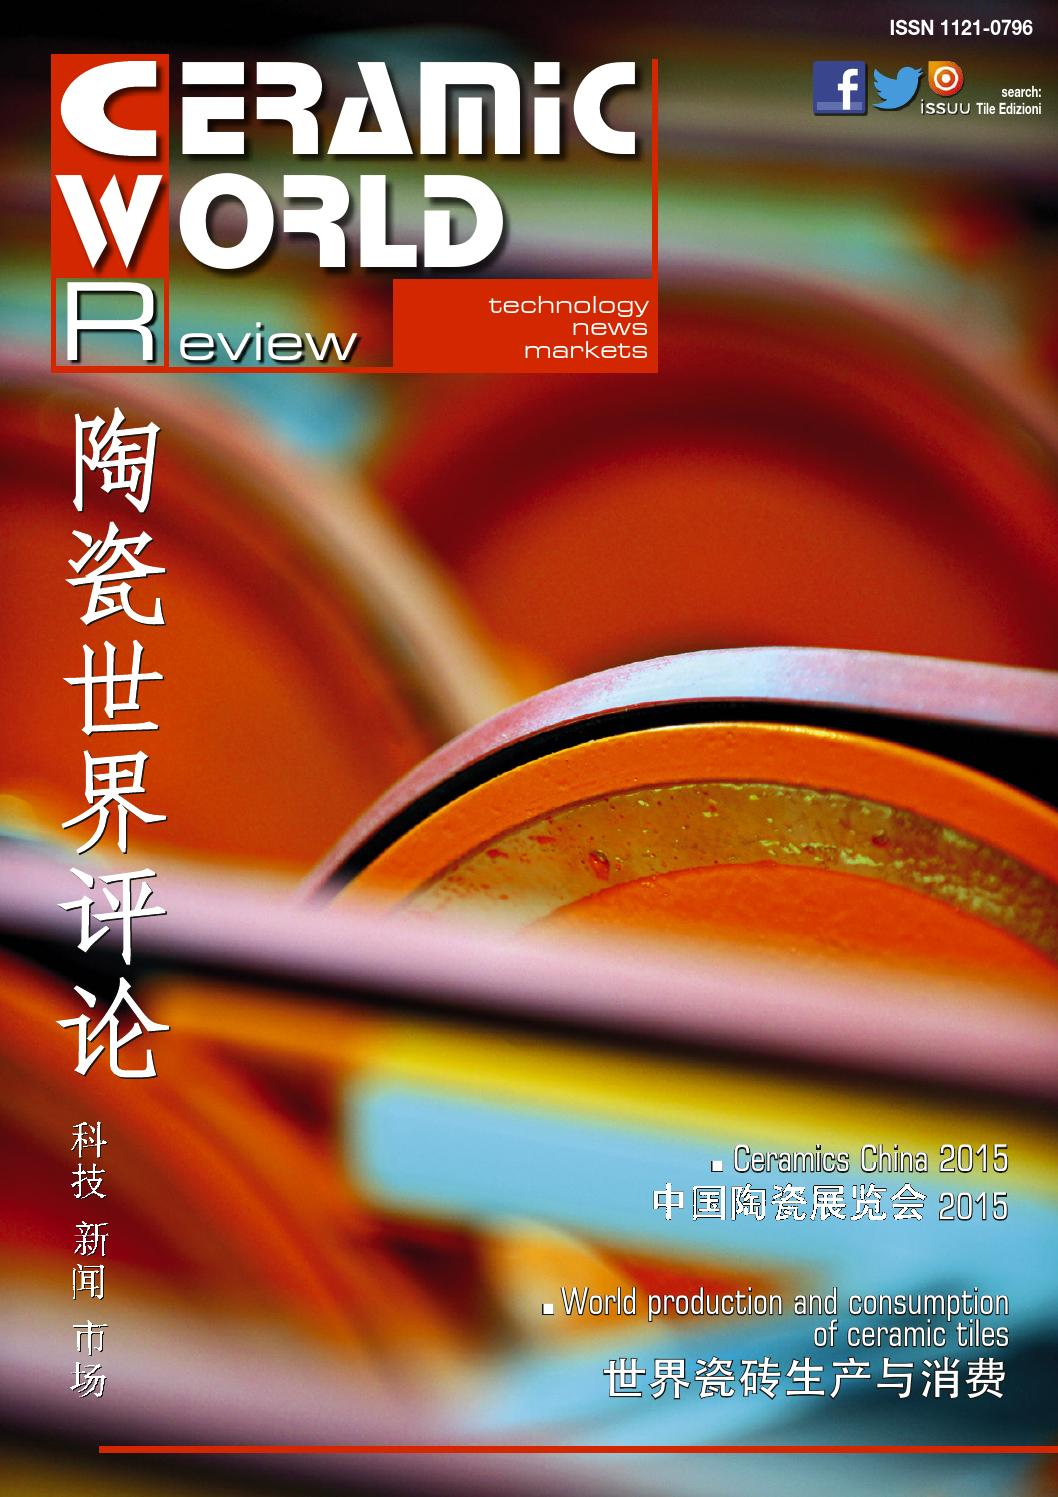 Ceramic world review by tile edizioni issuu ceramic world review china 2015 dailygadgetfo Images